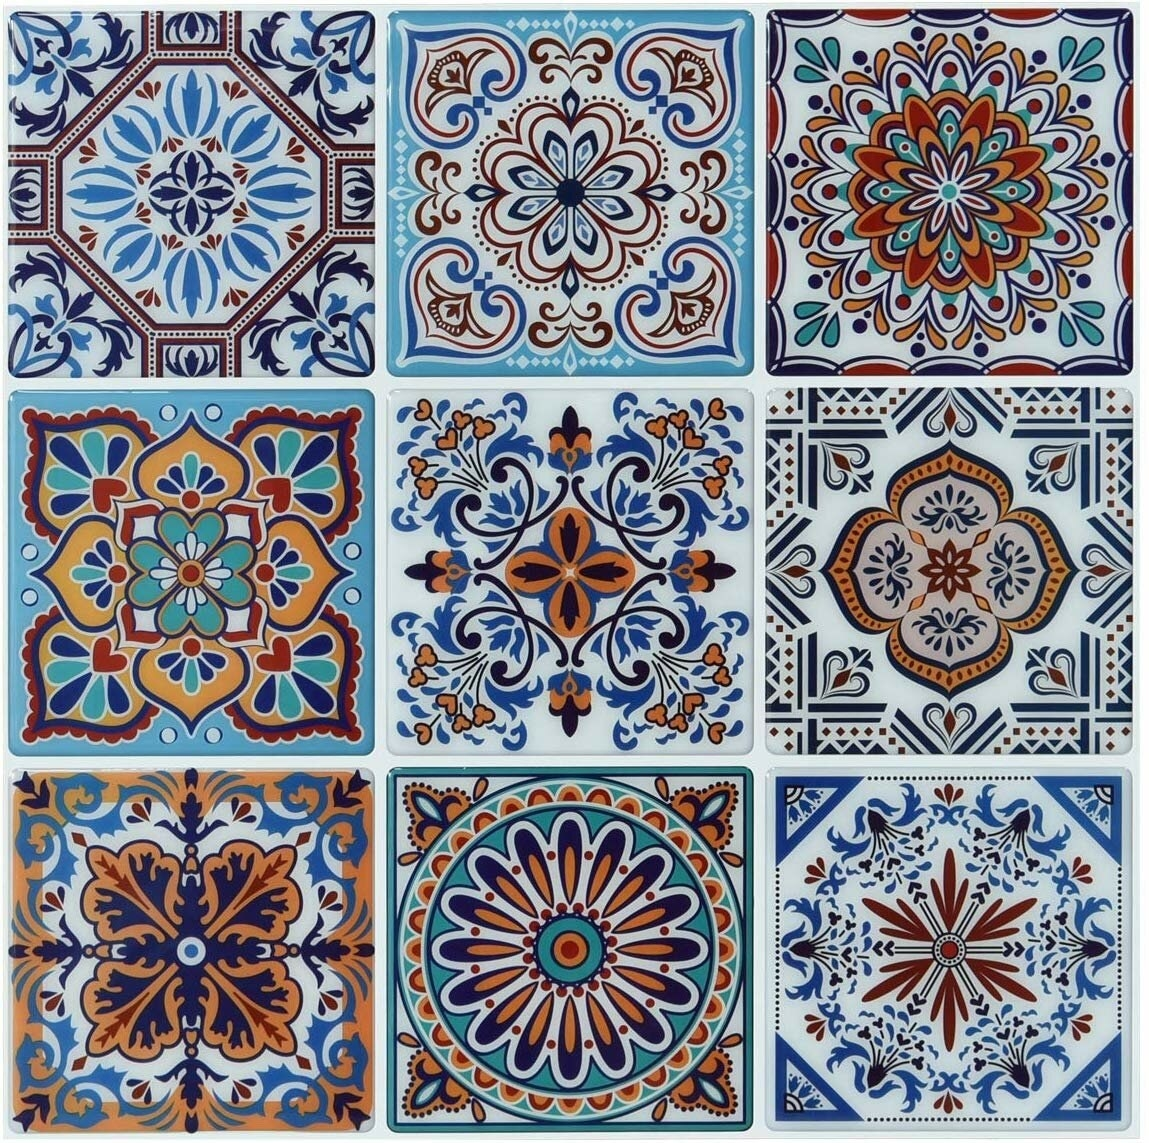 nine different peel and stick tiles